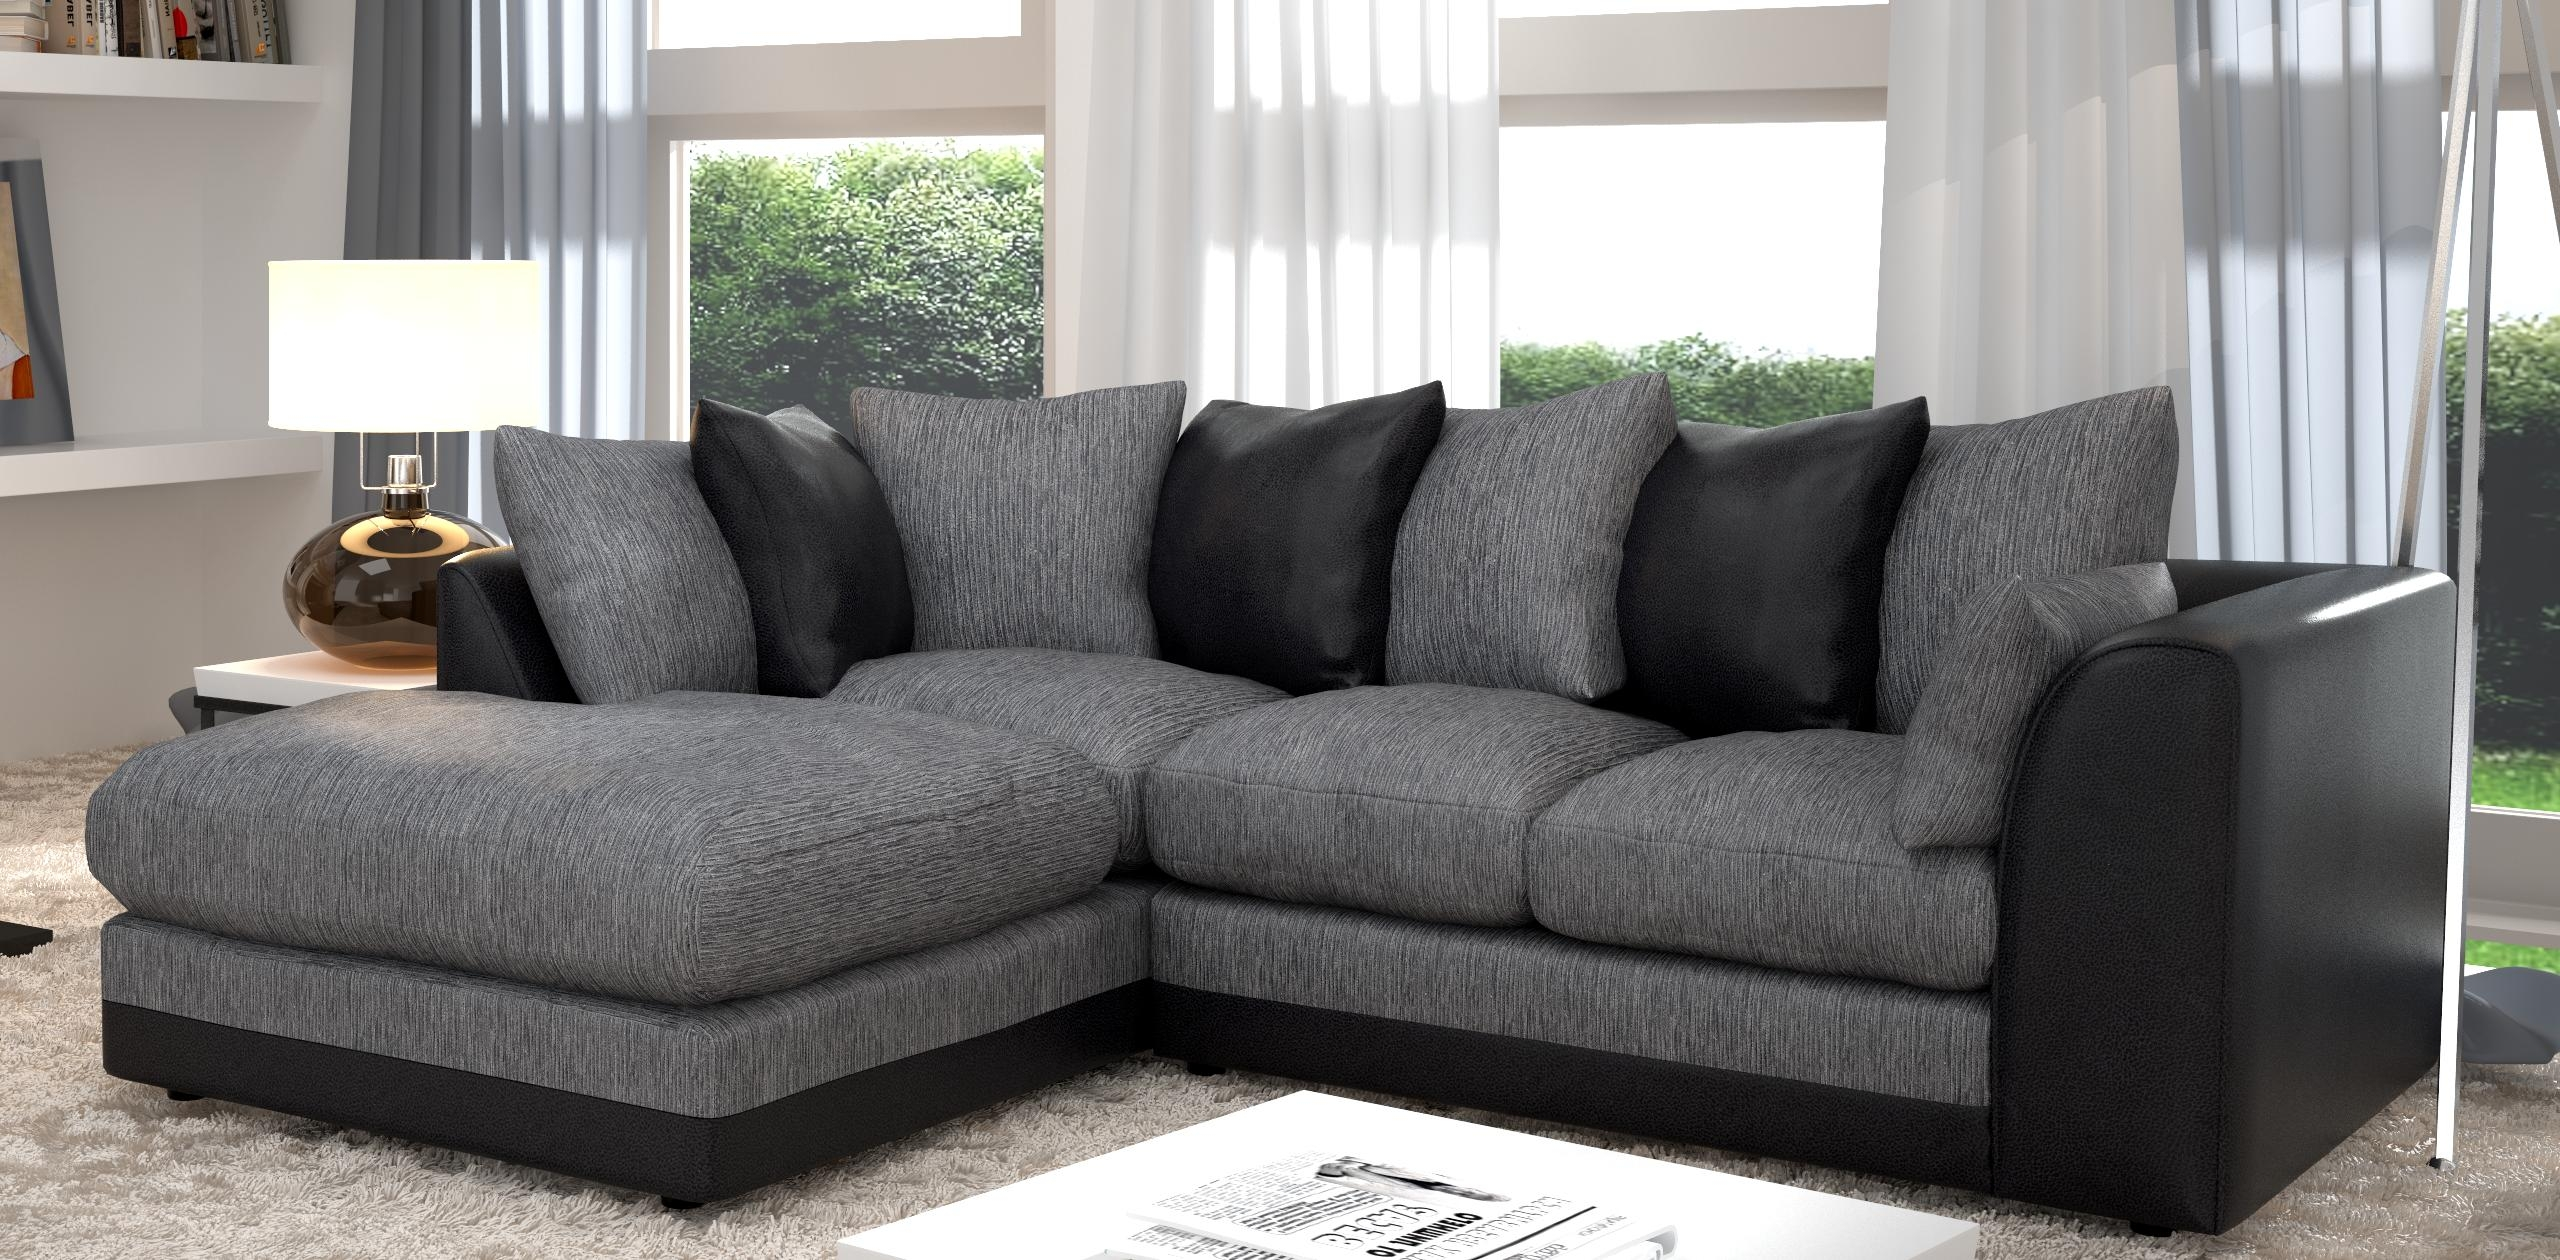 Grey Fabric Sofas Uk Grey Couch Wall Color. Grey Fabric Sofas Uk with regard to Black Corner Sofas